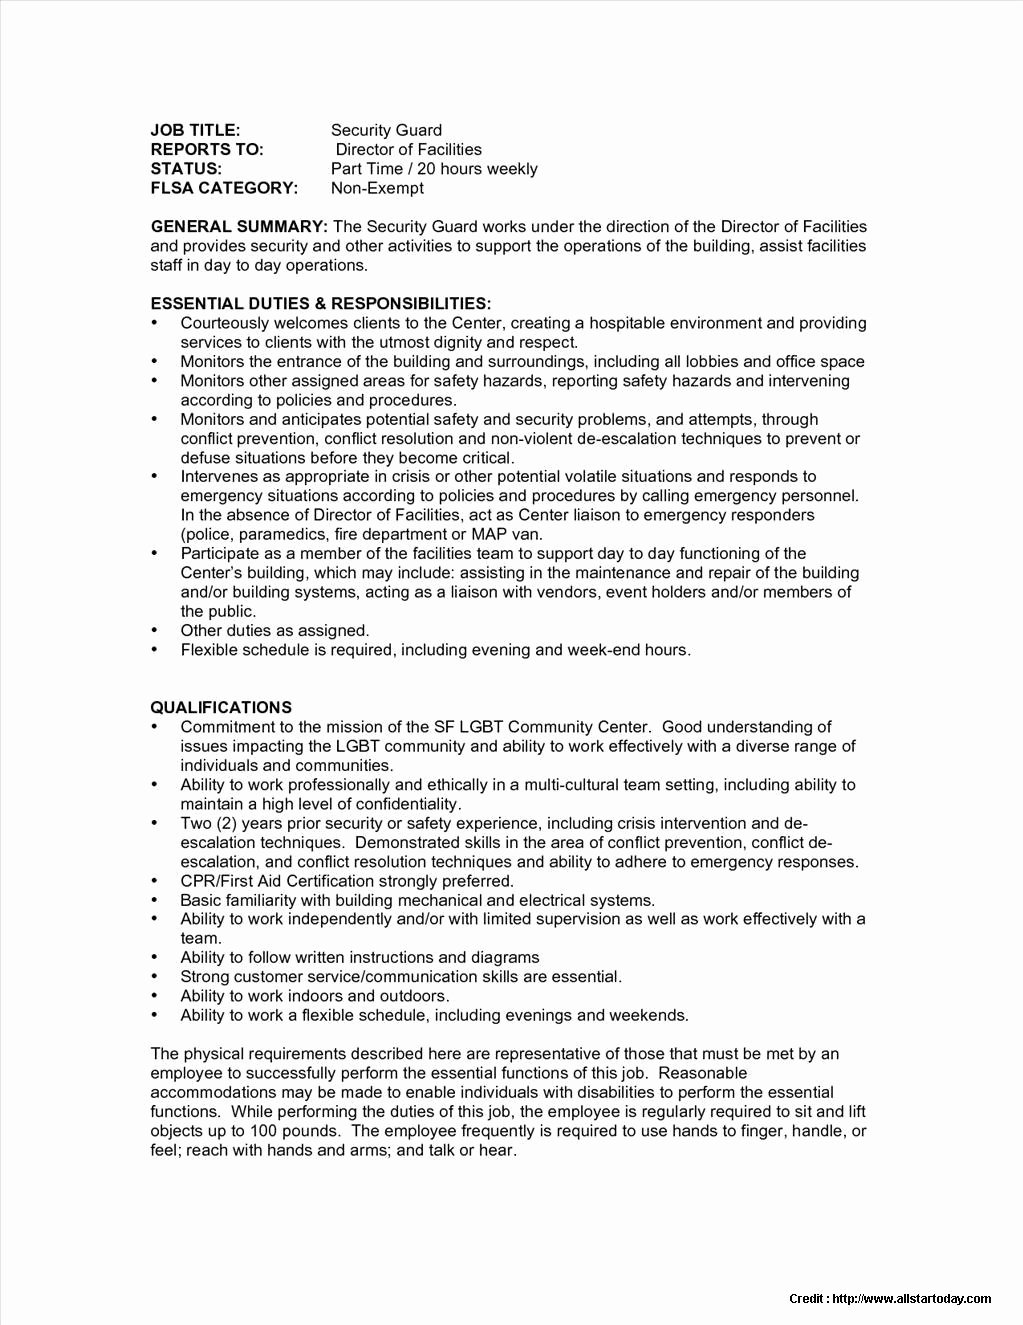 Sample Security Guard Resume No Experience Resume